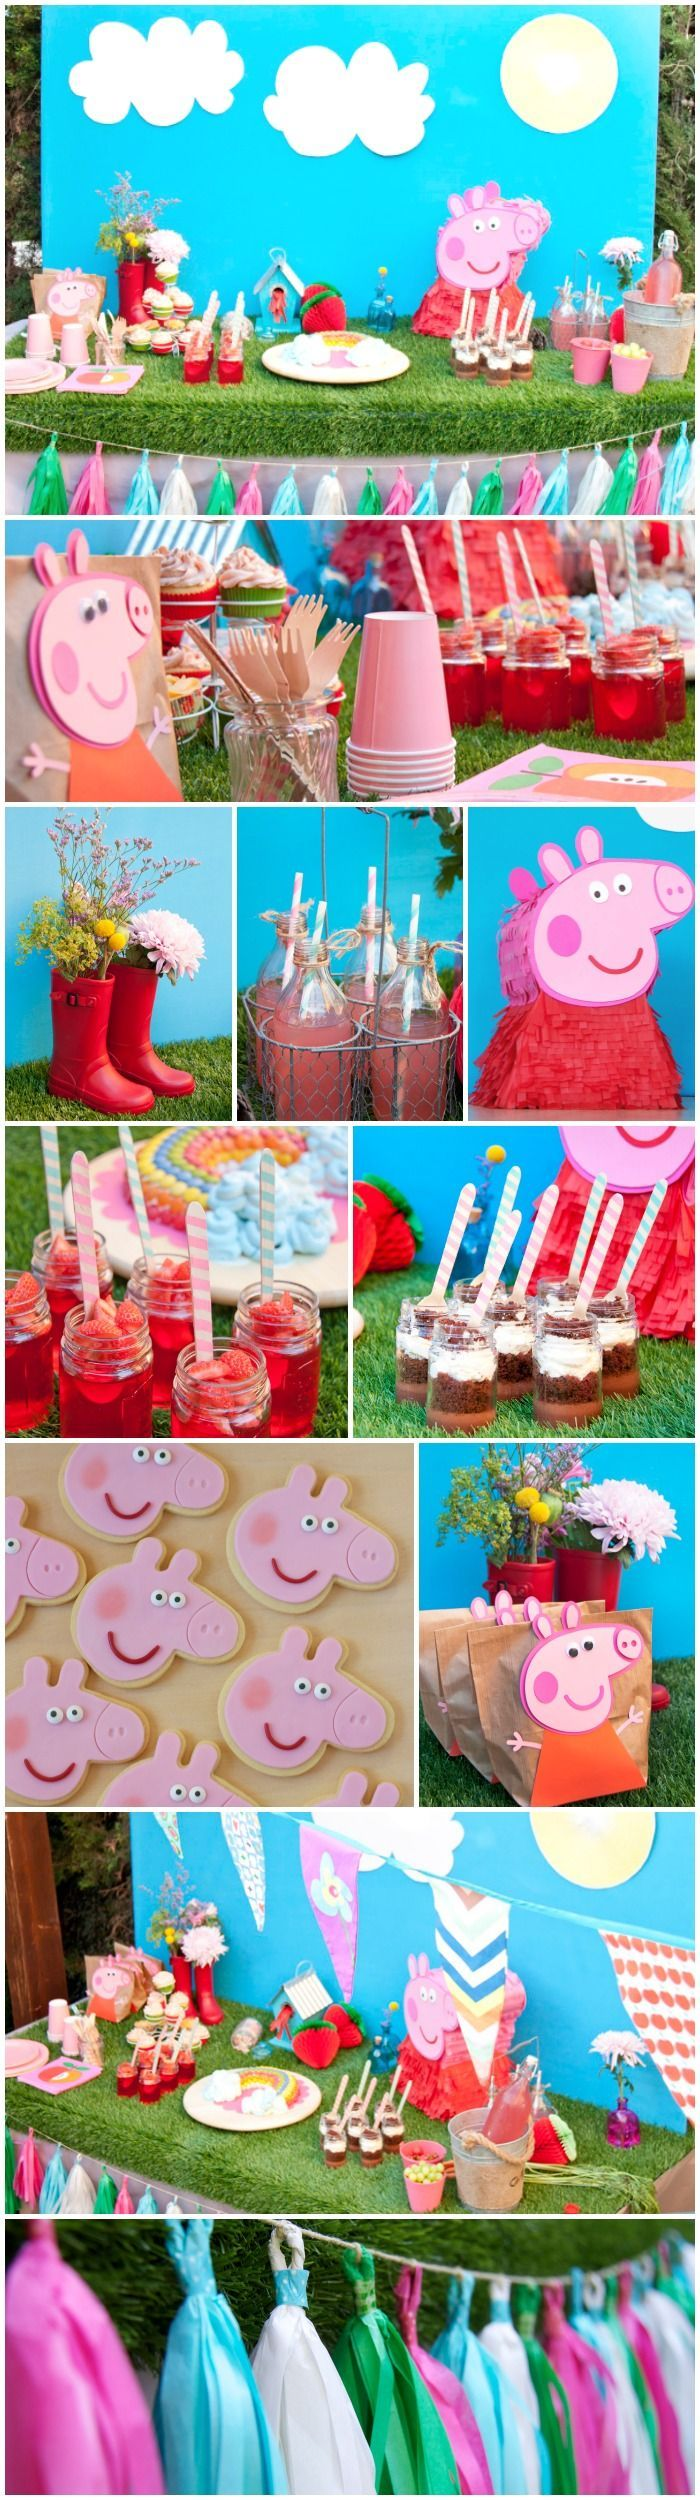 Peppa Pig Party  - love the pink lemonade and flowers in wellies!